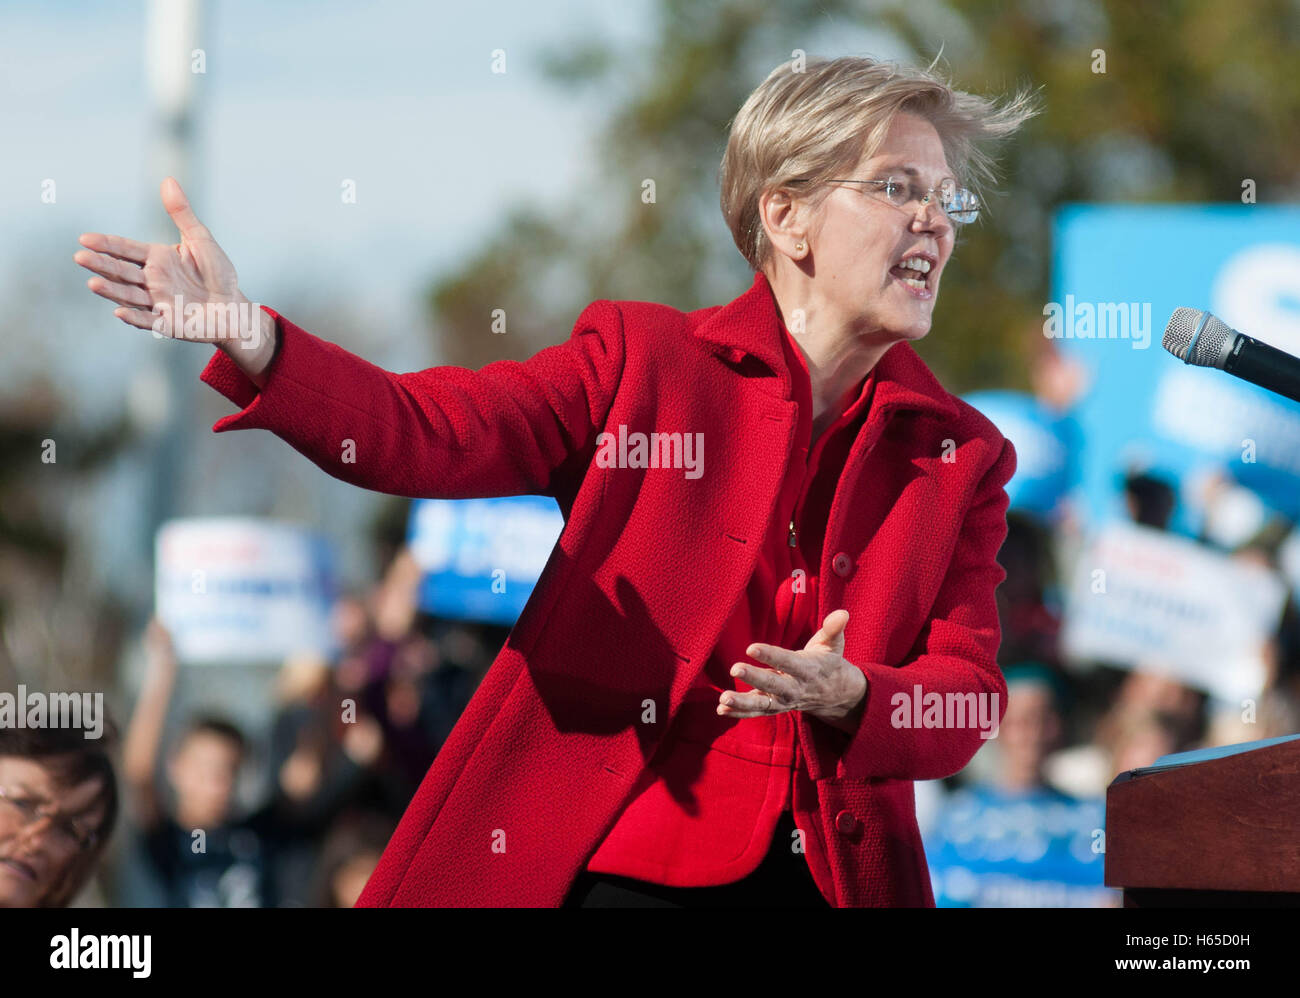 U.S. Senator Elizabeth Warren, Democrat of Massachusetts, speaking at a rally for Hillary Clinton in New Hampshire, - Stock Image